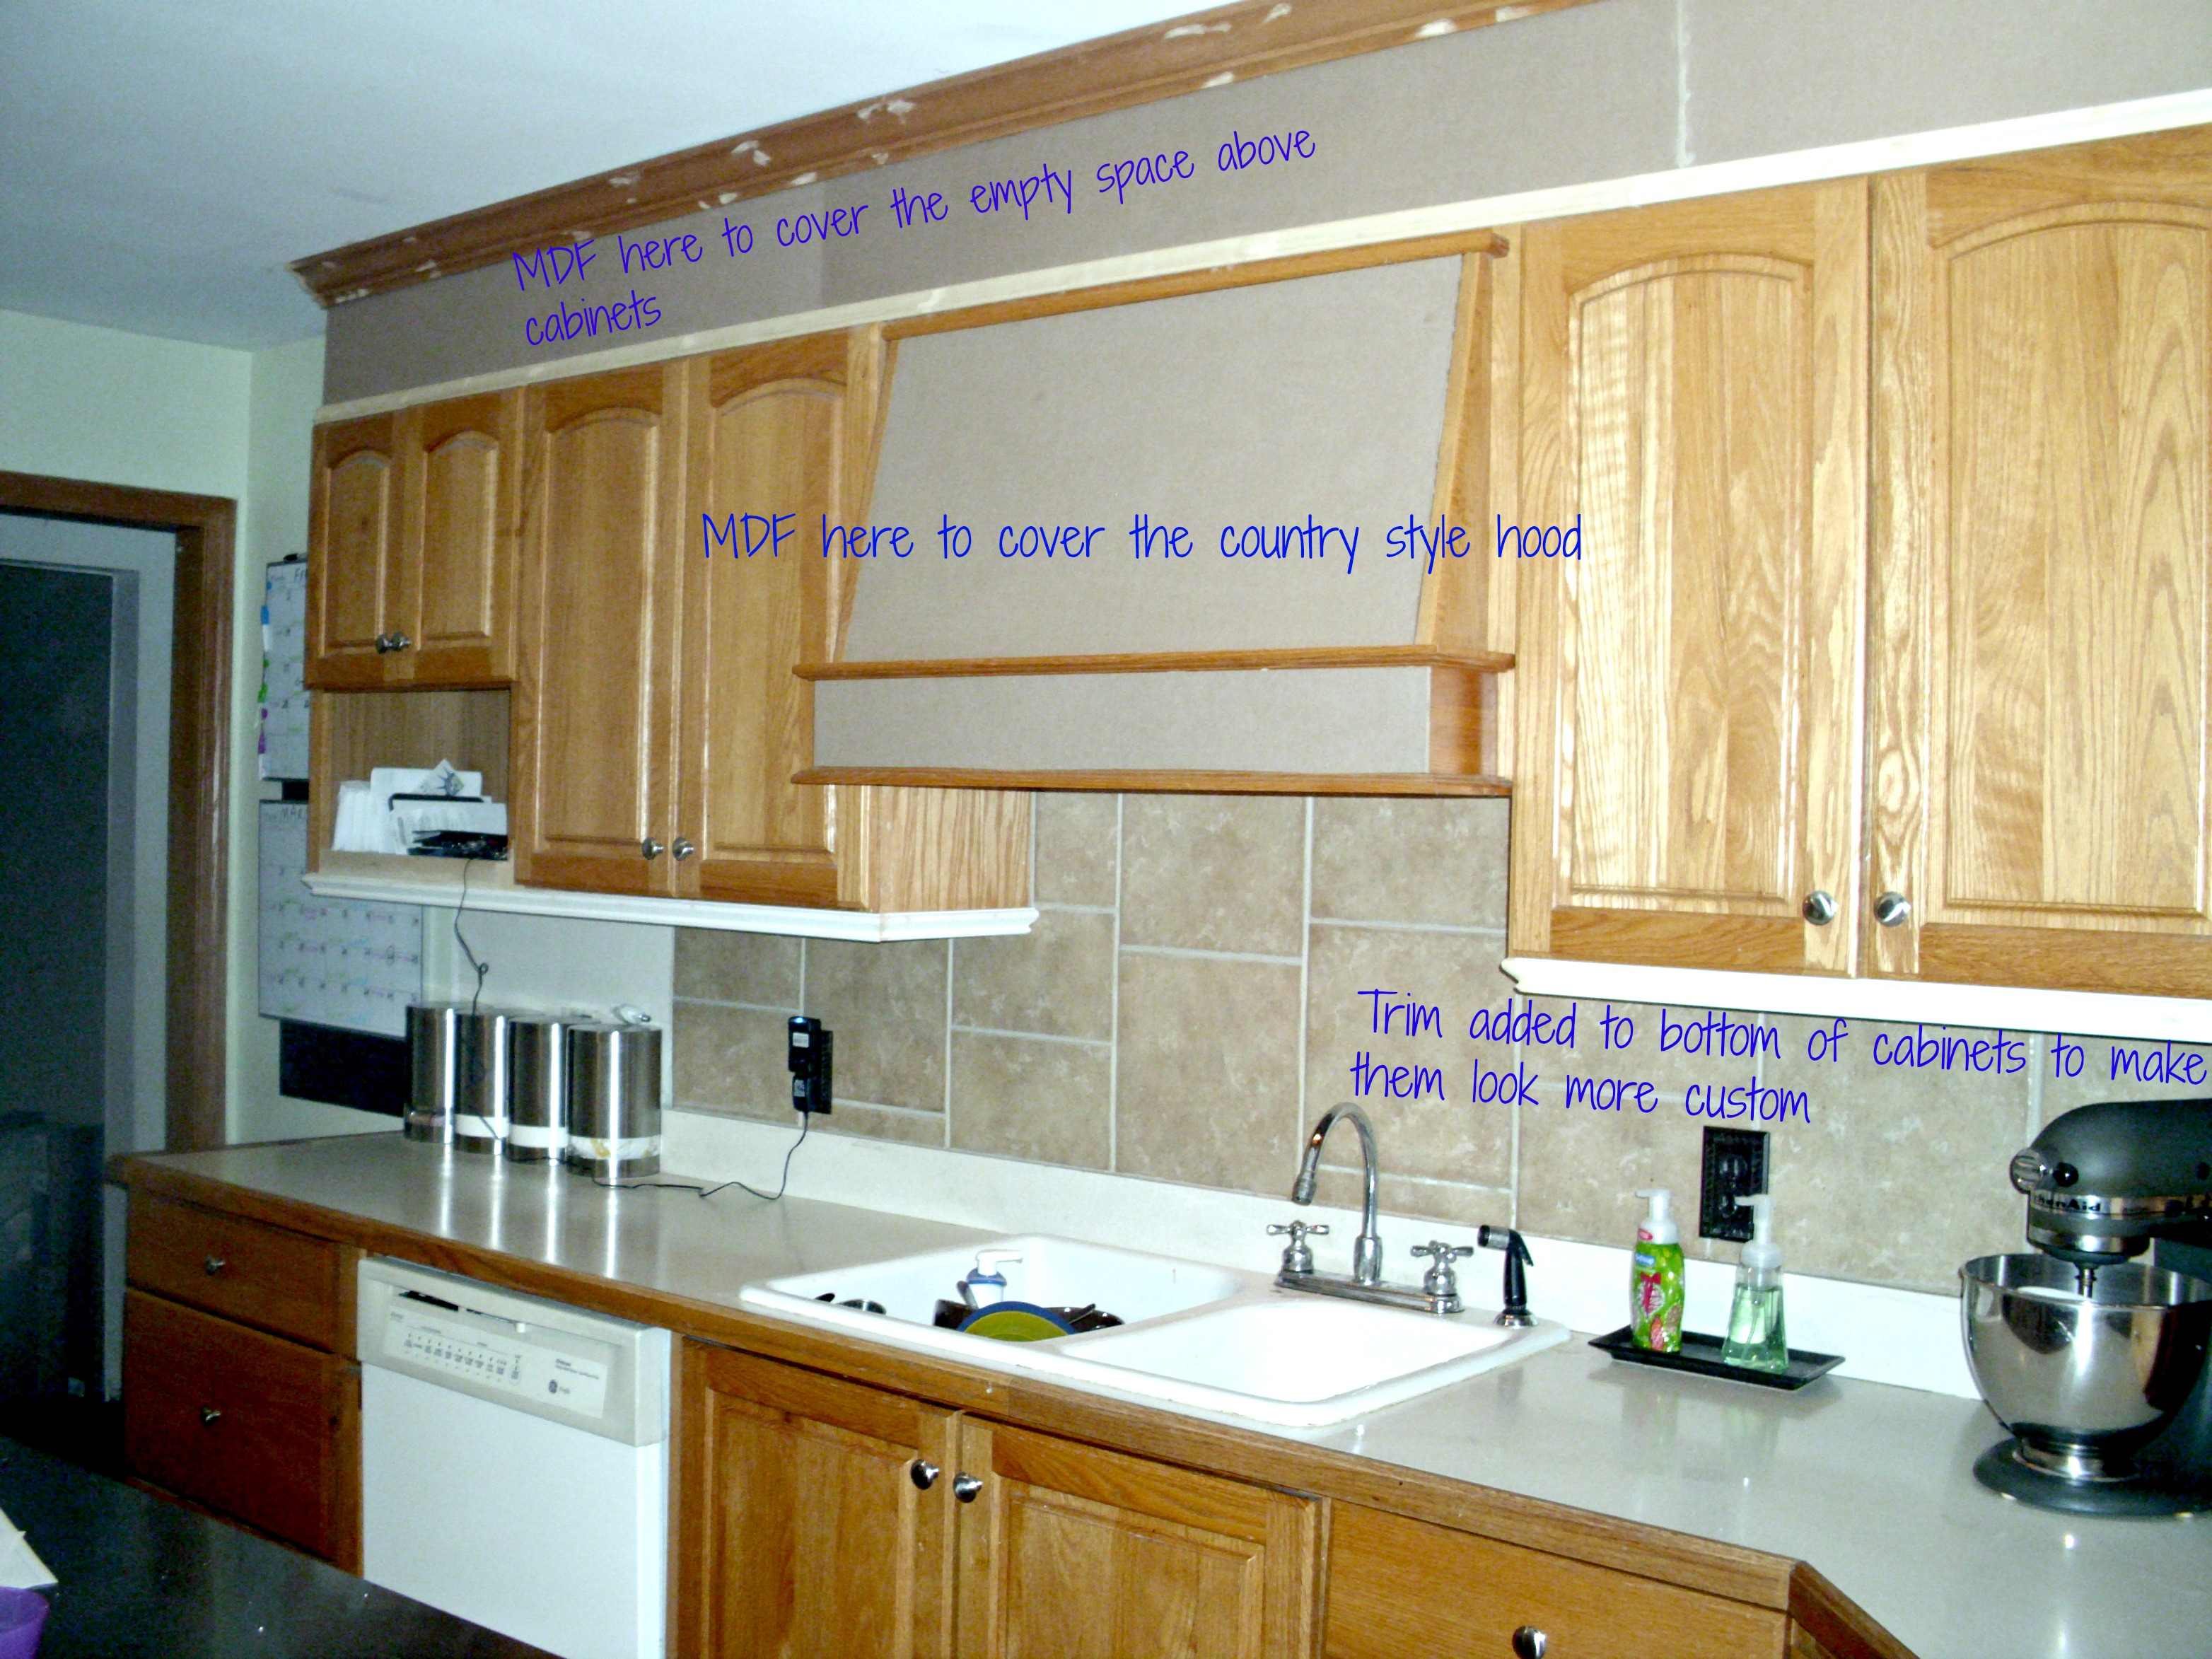 Bye Bye Space Above Your Kitchen Cabinets A Life That We Built